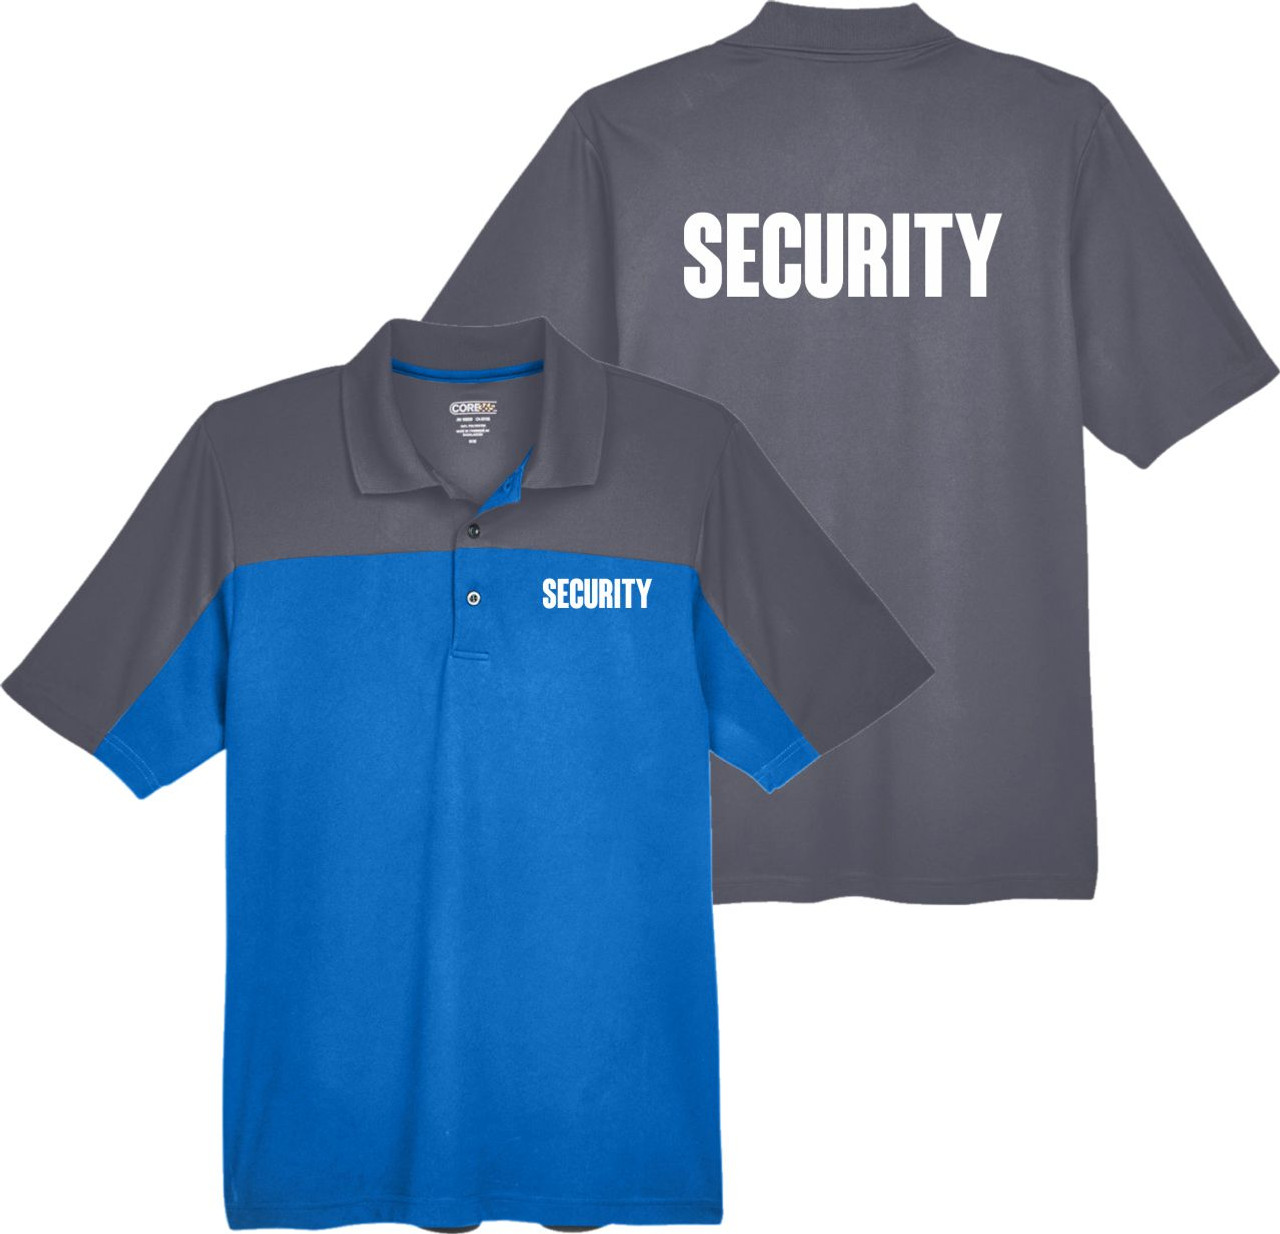 Royal Blue and Grey Security Polo